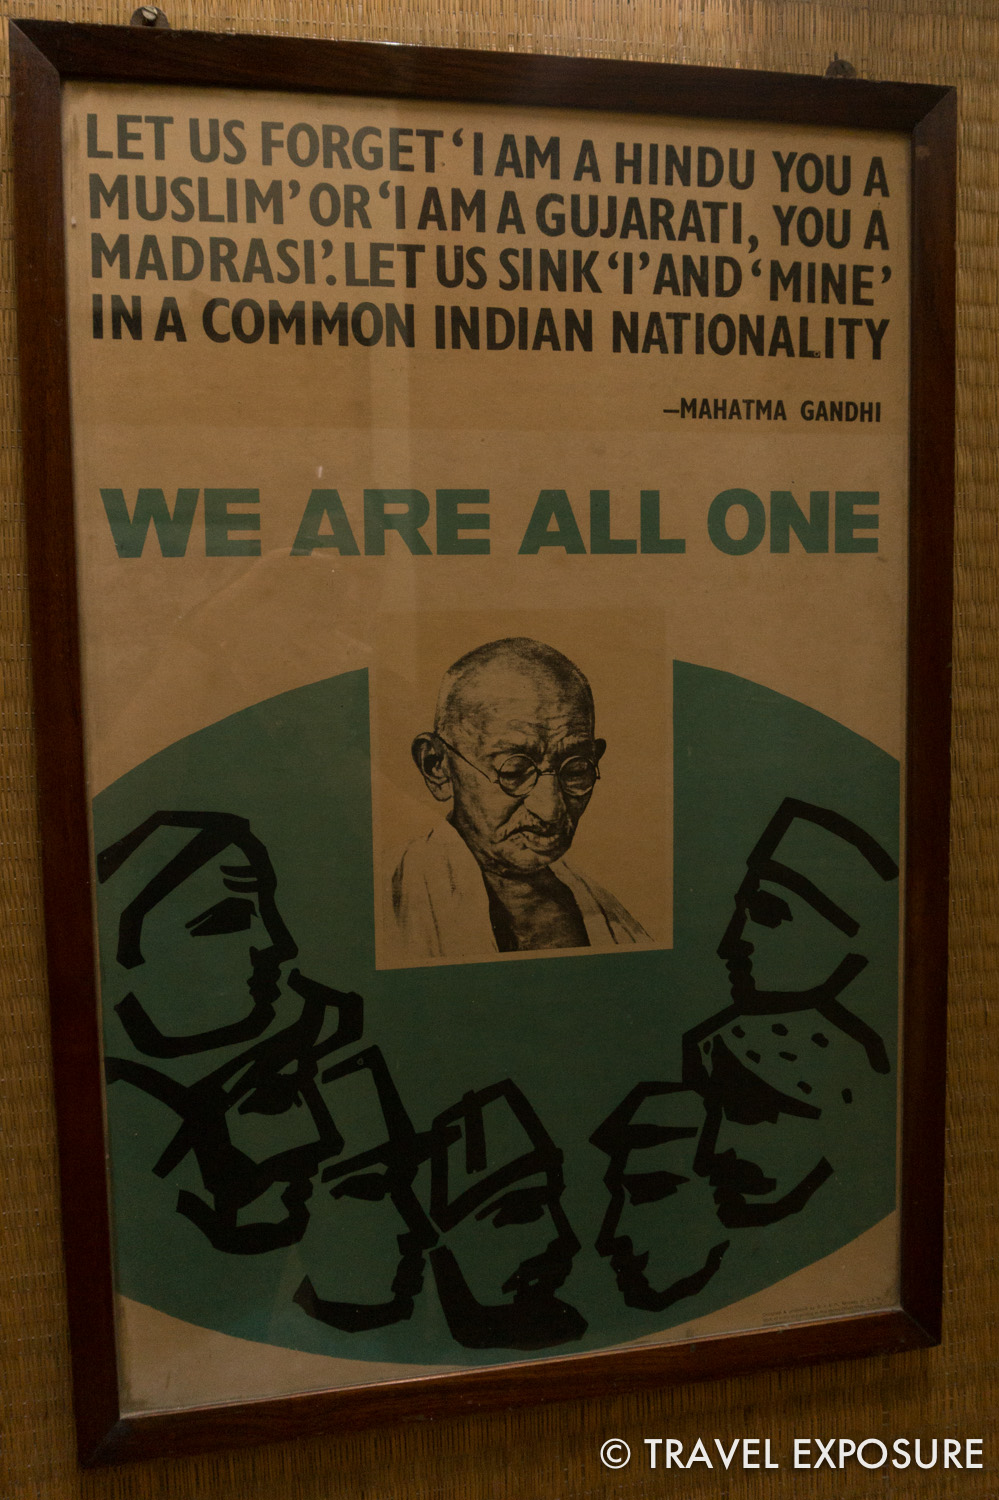 At the Gandhi Museum in Mumbai